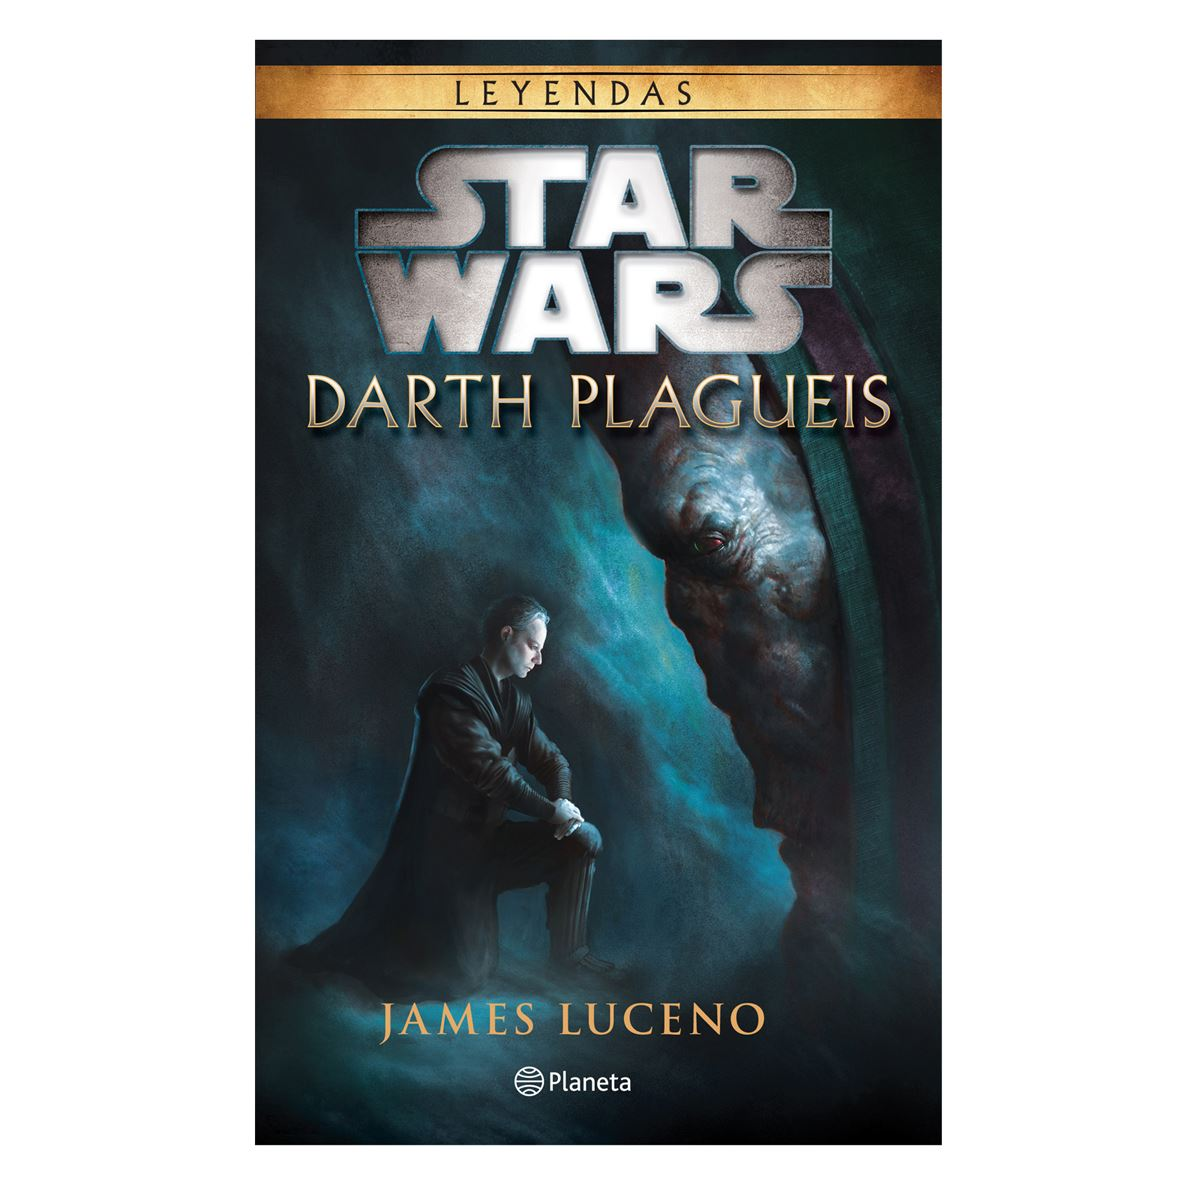 Star wars, darth plagueis Libro - Sanborns